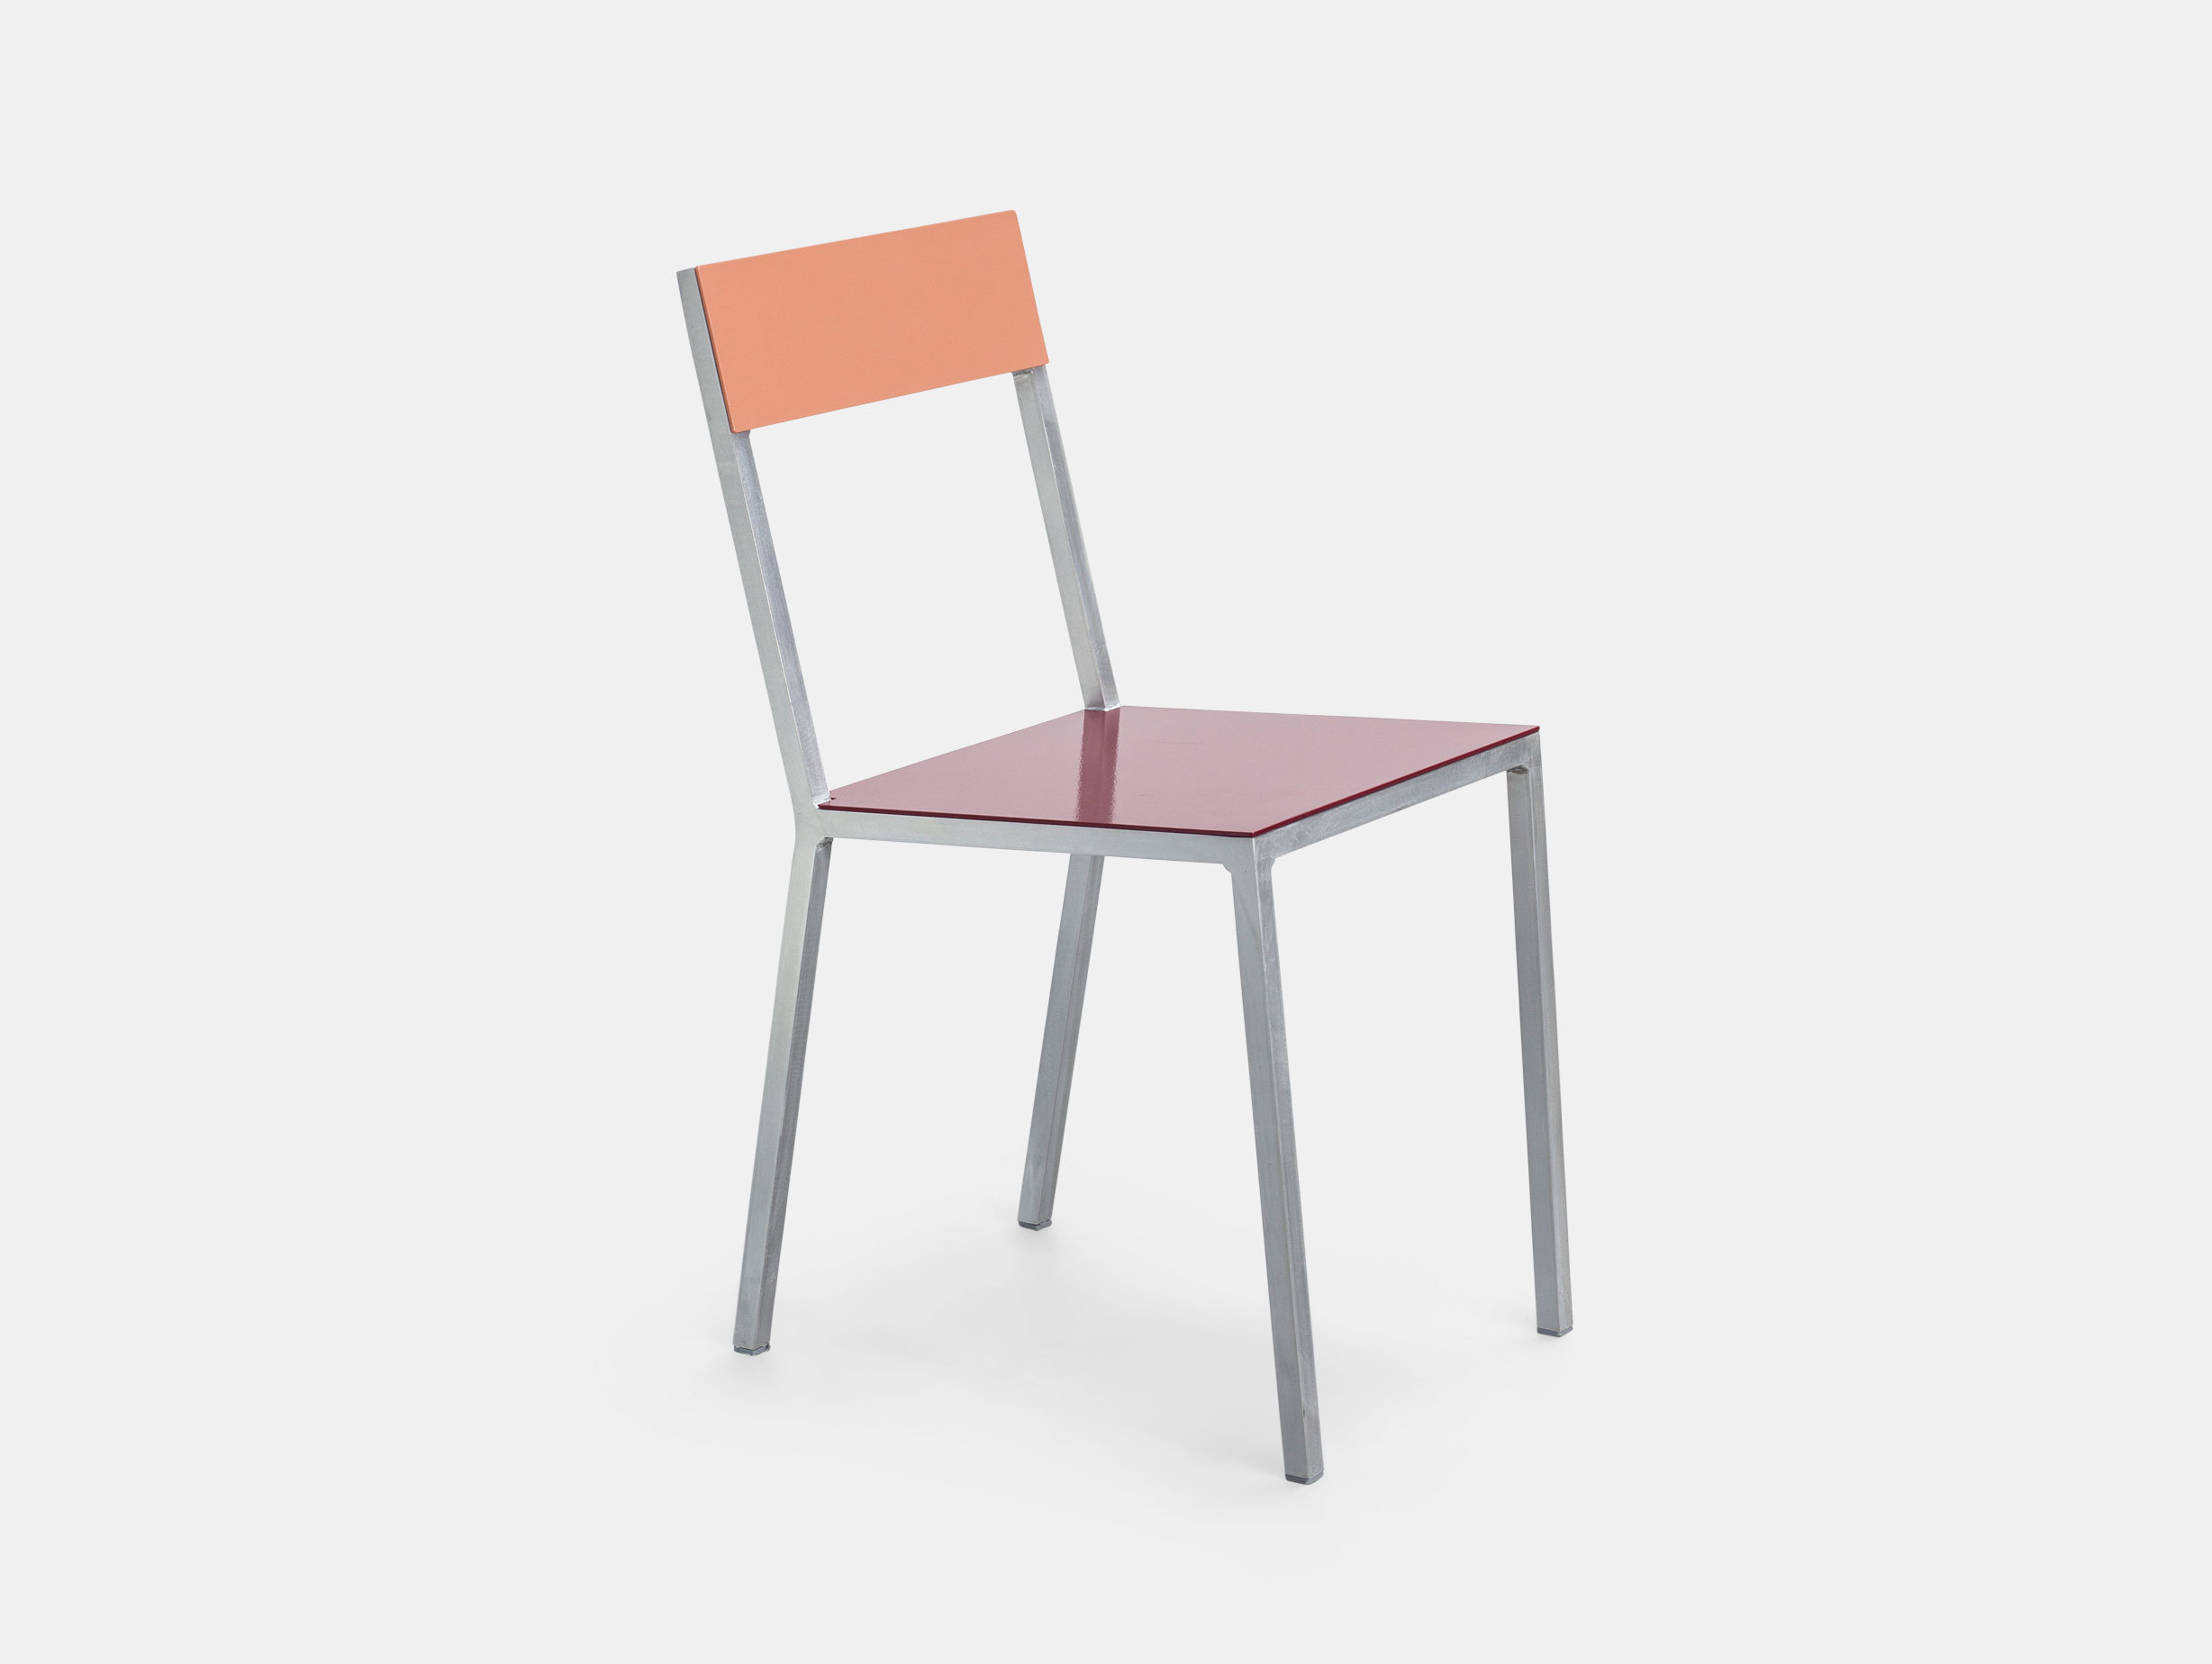 Alu Chair image 3